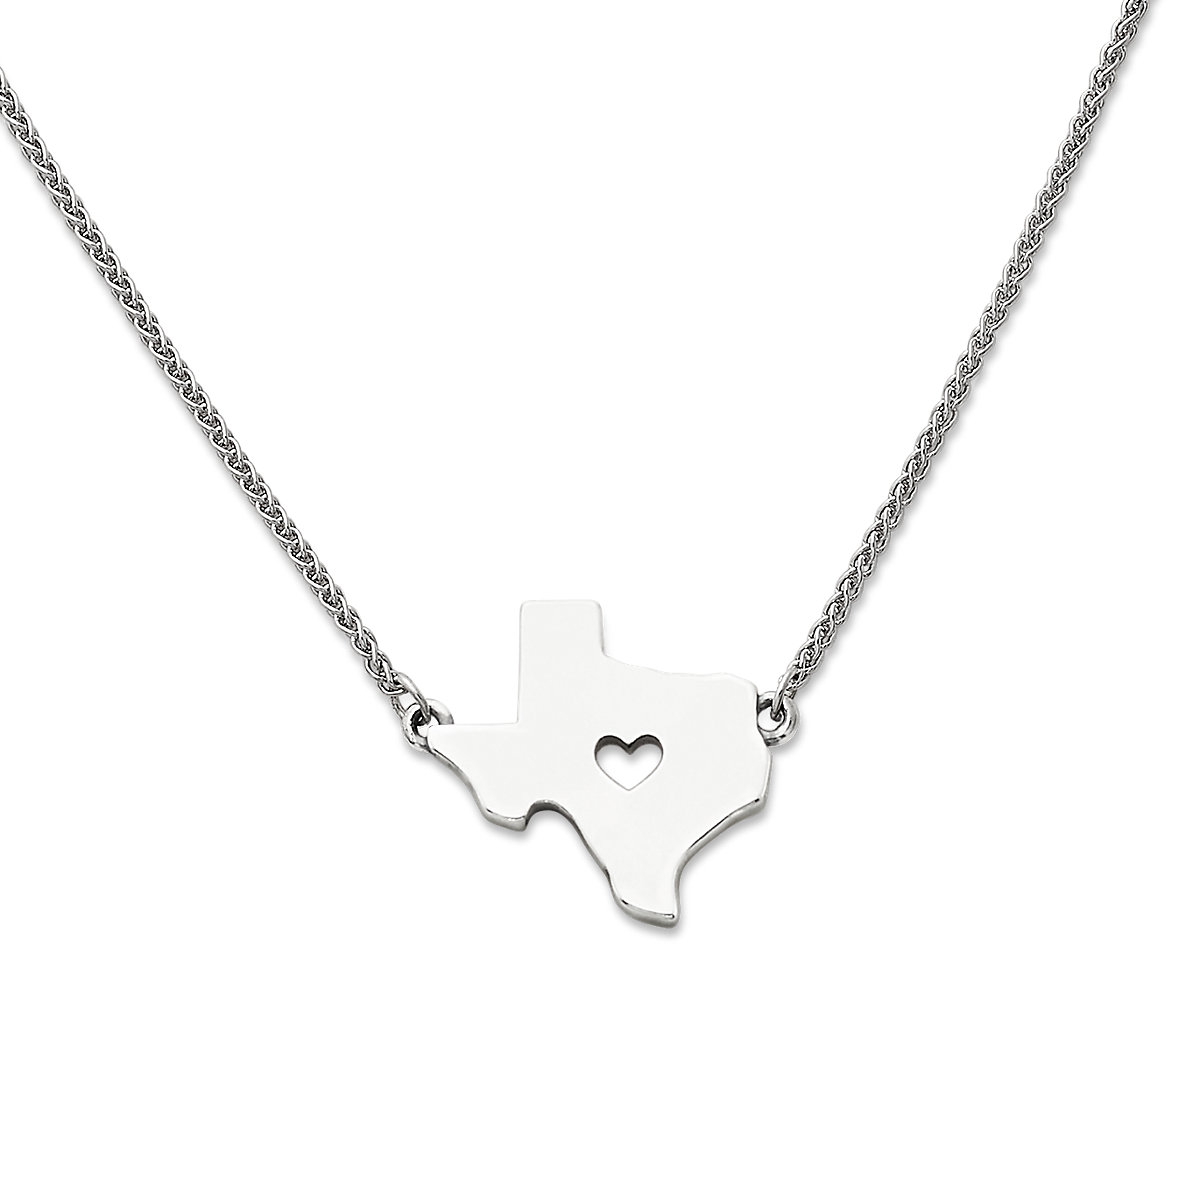 The Texas Necklace